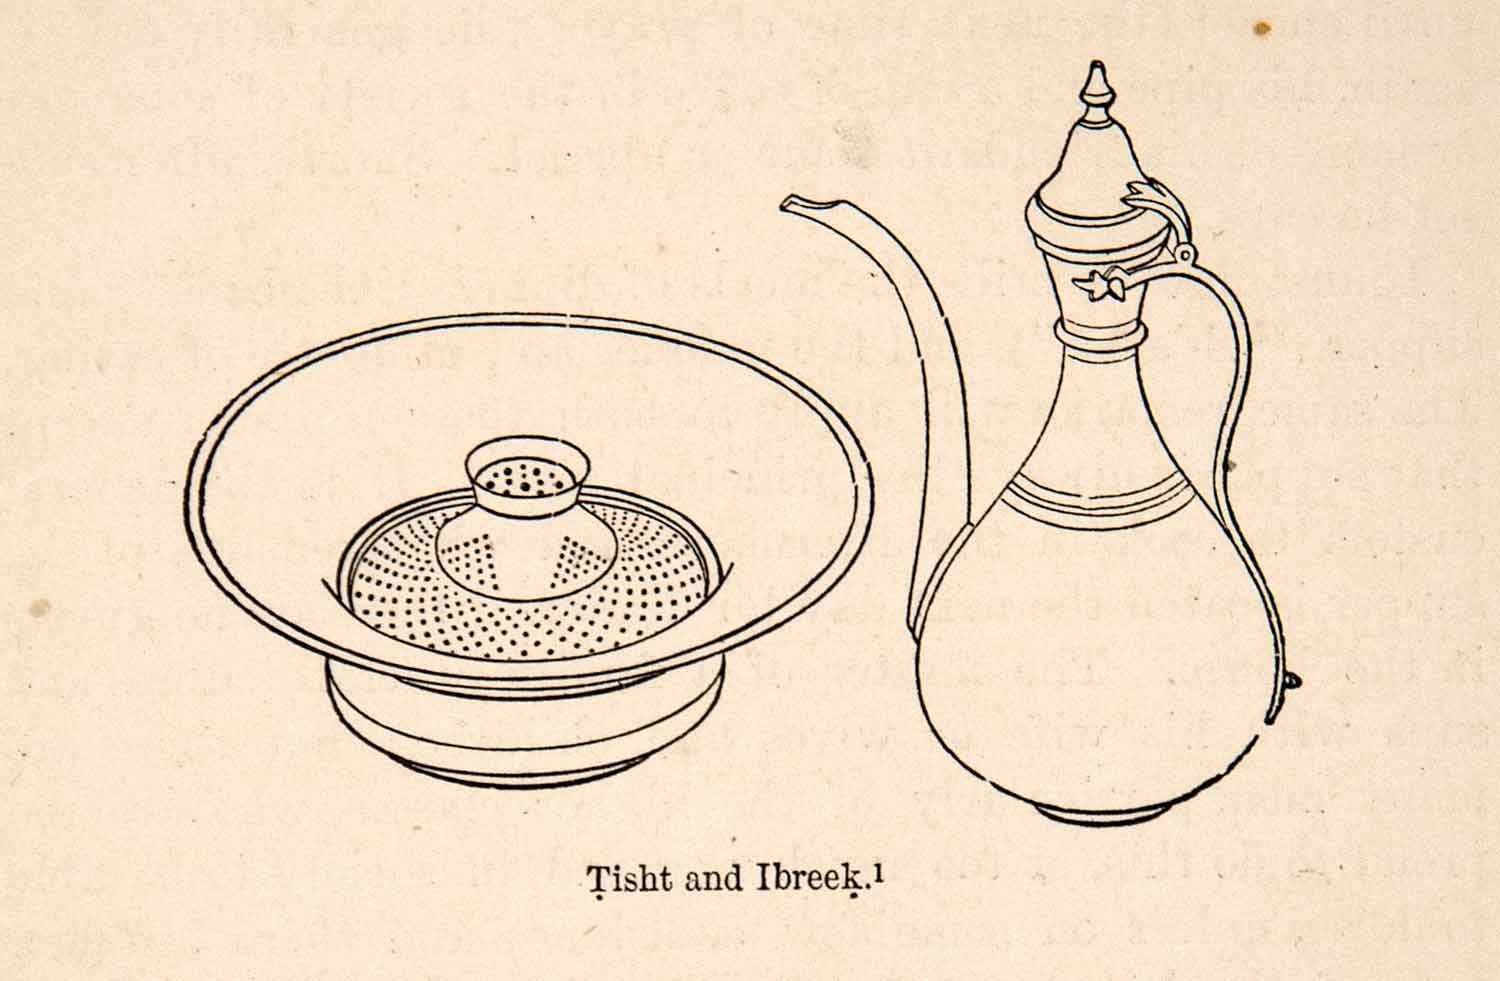 1871 Wood Engraving Tisht Ibreek Basin Pitcher Container Soap Washing XGQB7